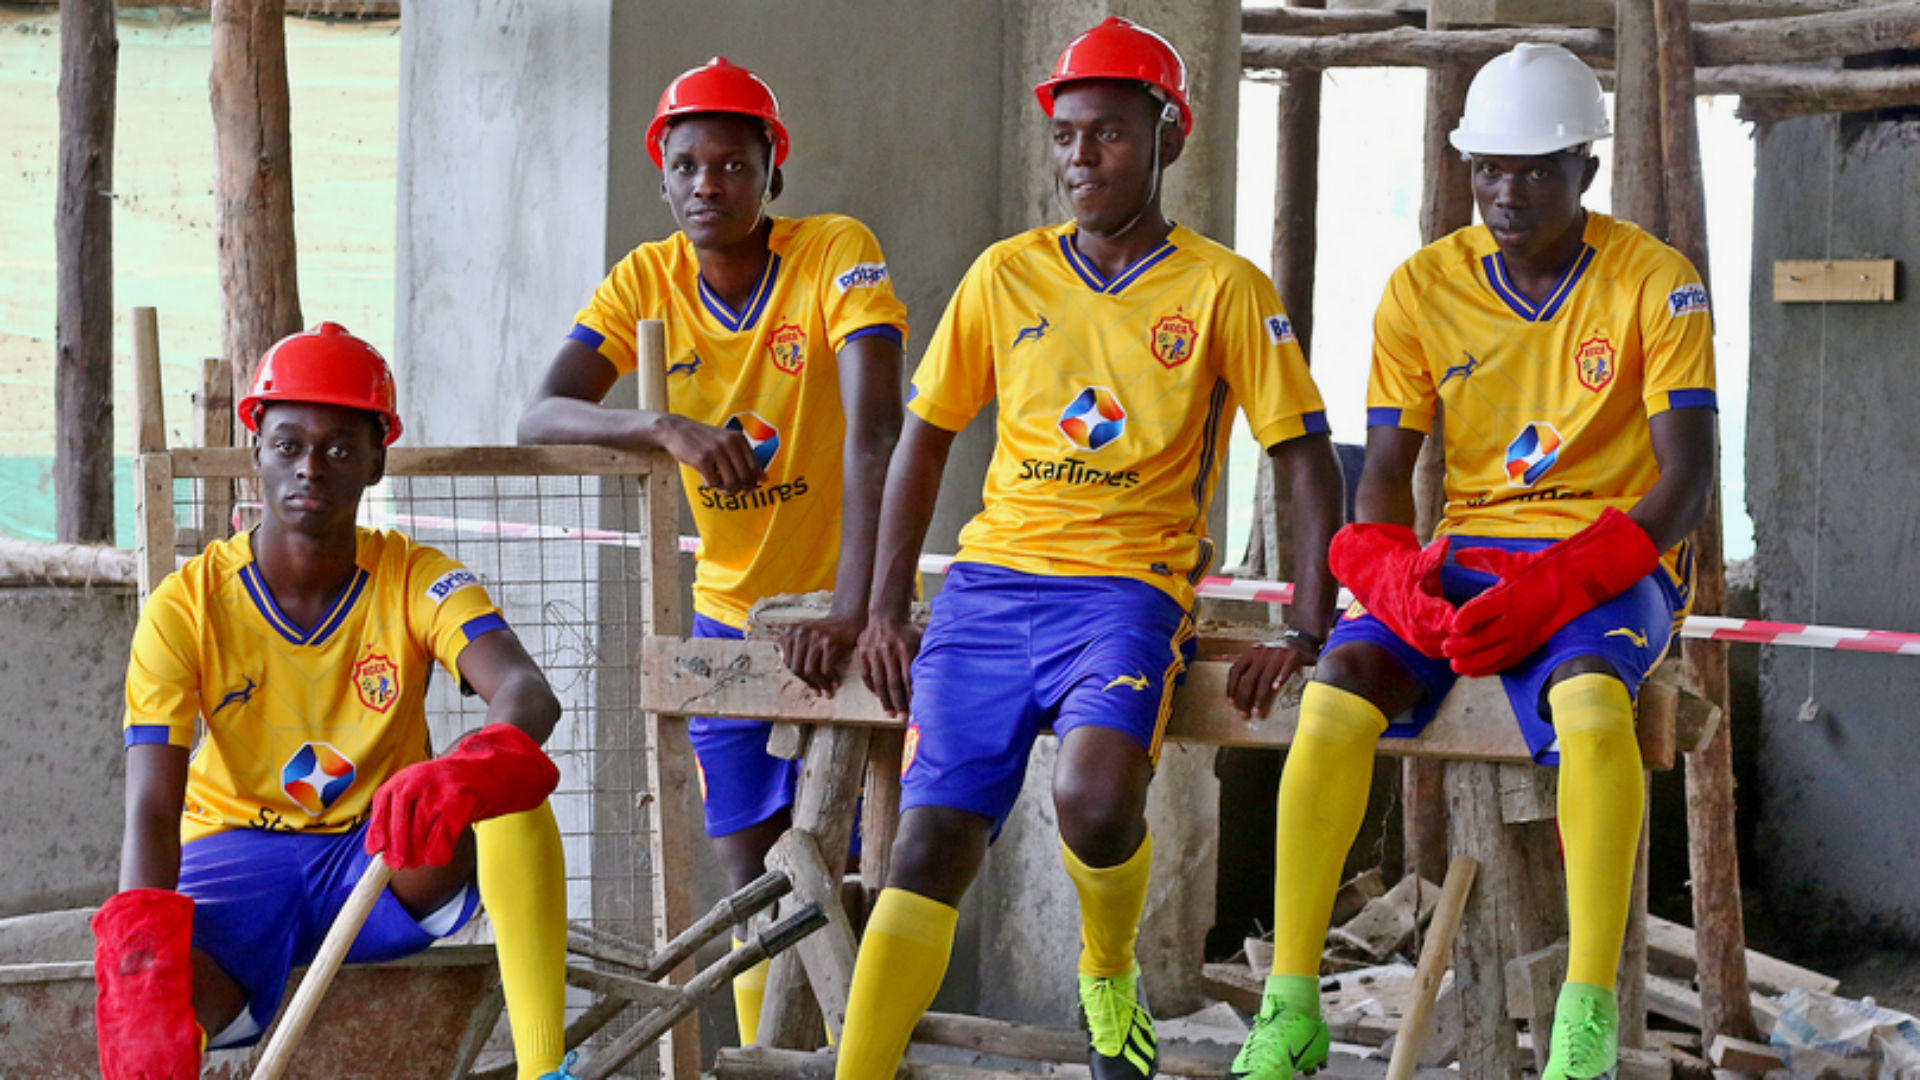 KCCA FC explain what informed their jersey design for 2020/21 season